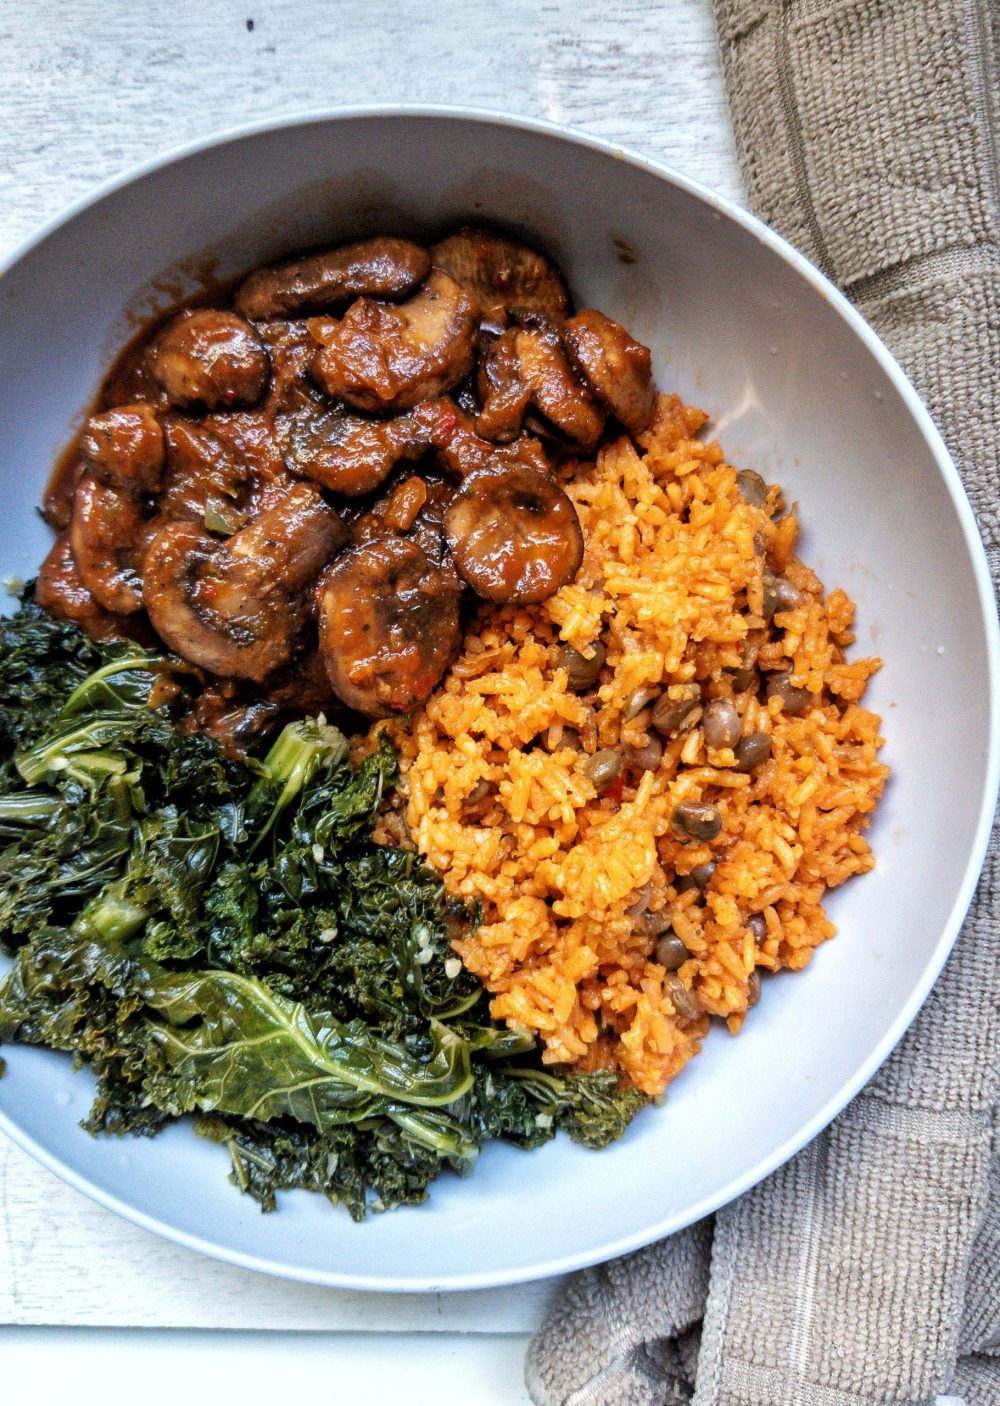 Puerto Rican yellow rice with a side of stewed mushrooms and braised kale in a gray bowl